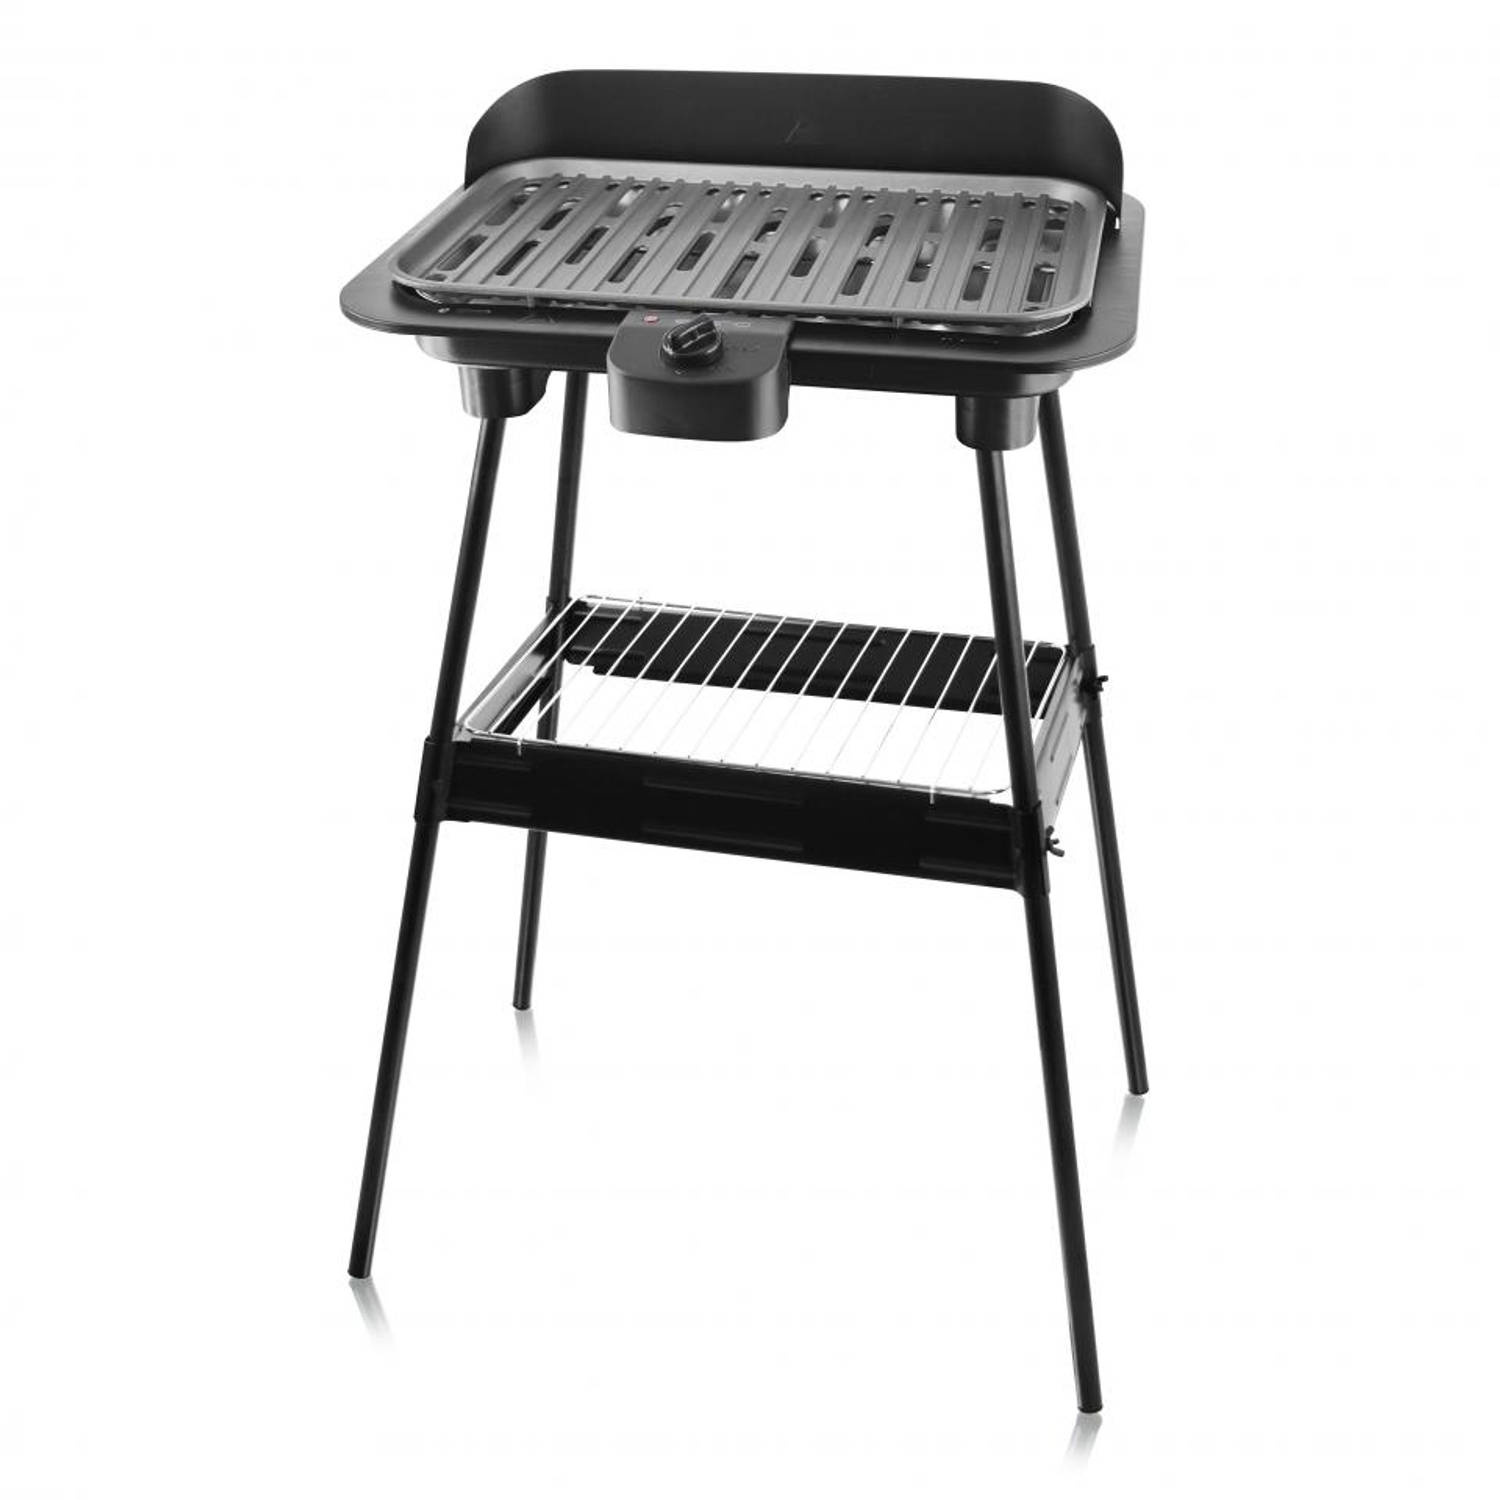 Emerio elektrische barbecue BG-111822.2